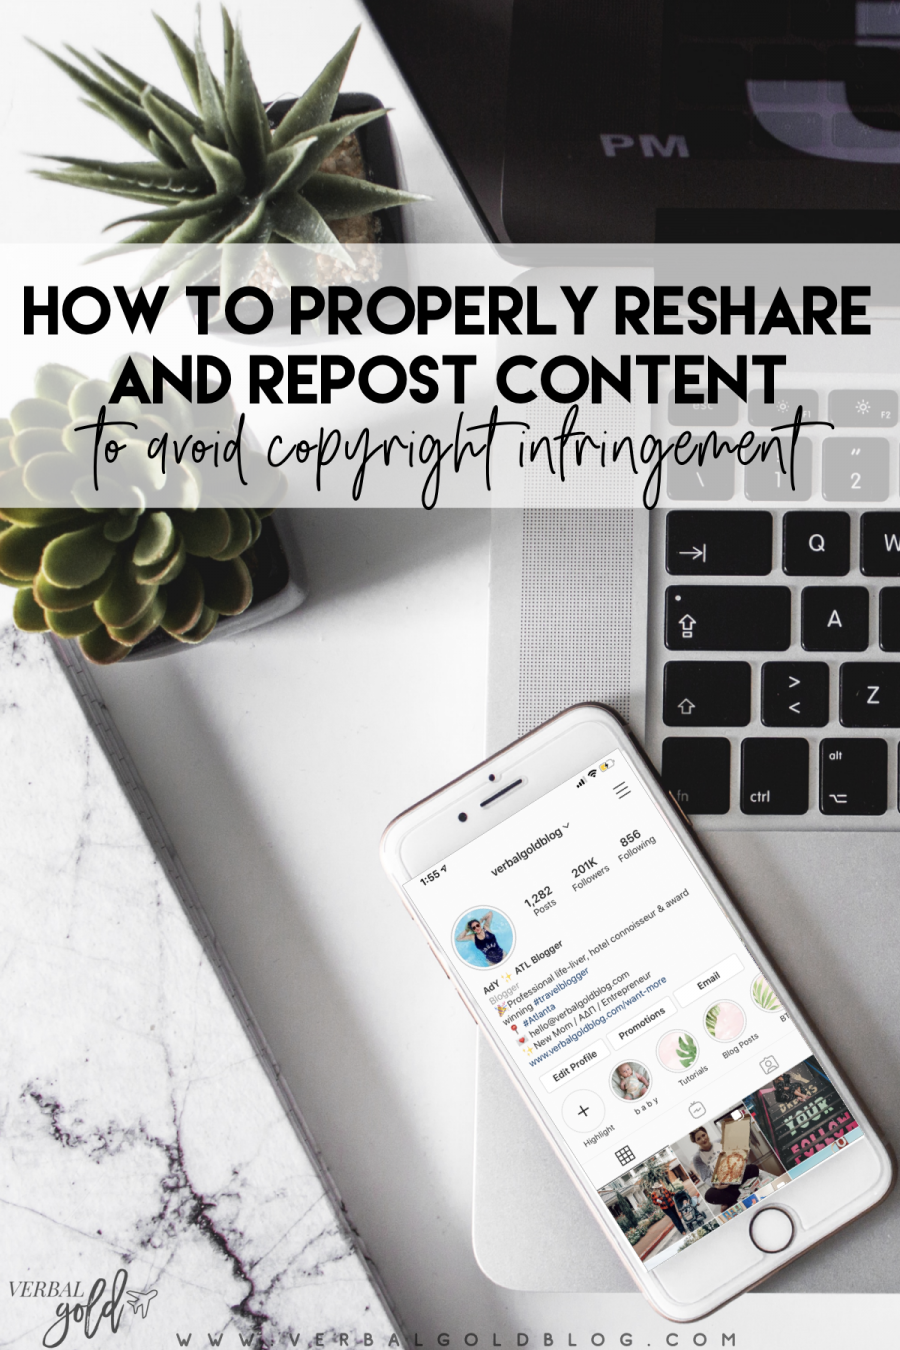 How To Properly Reshare and RePost Content To Avoid Copyright Infringement + What To Do If Your Content Gets Stolen